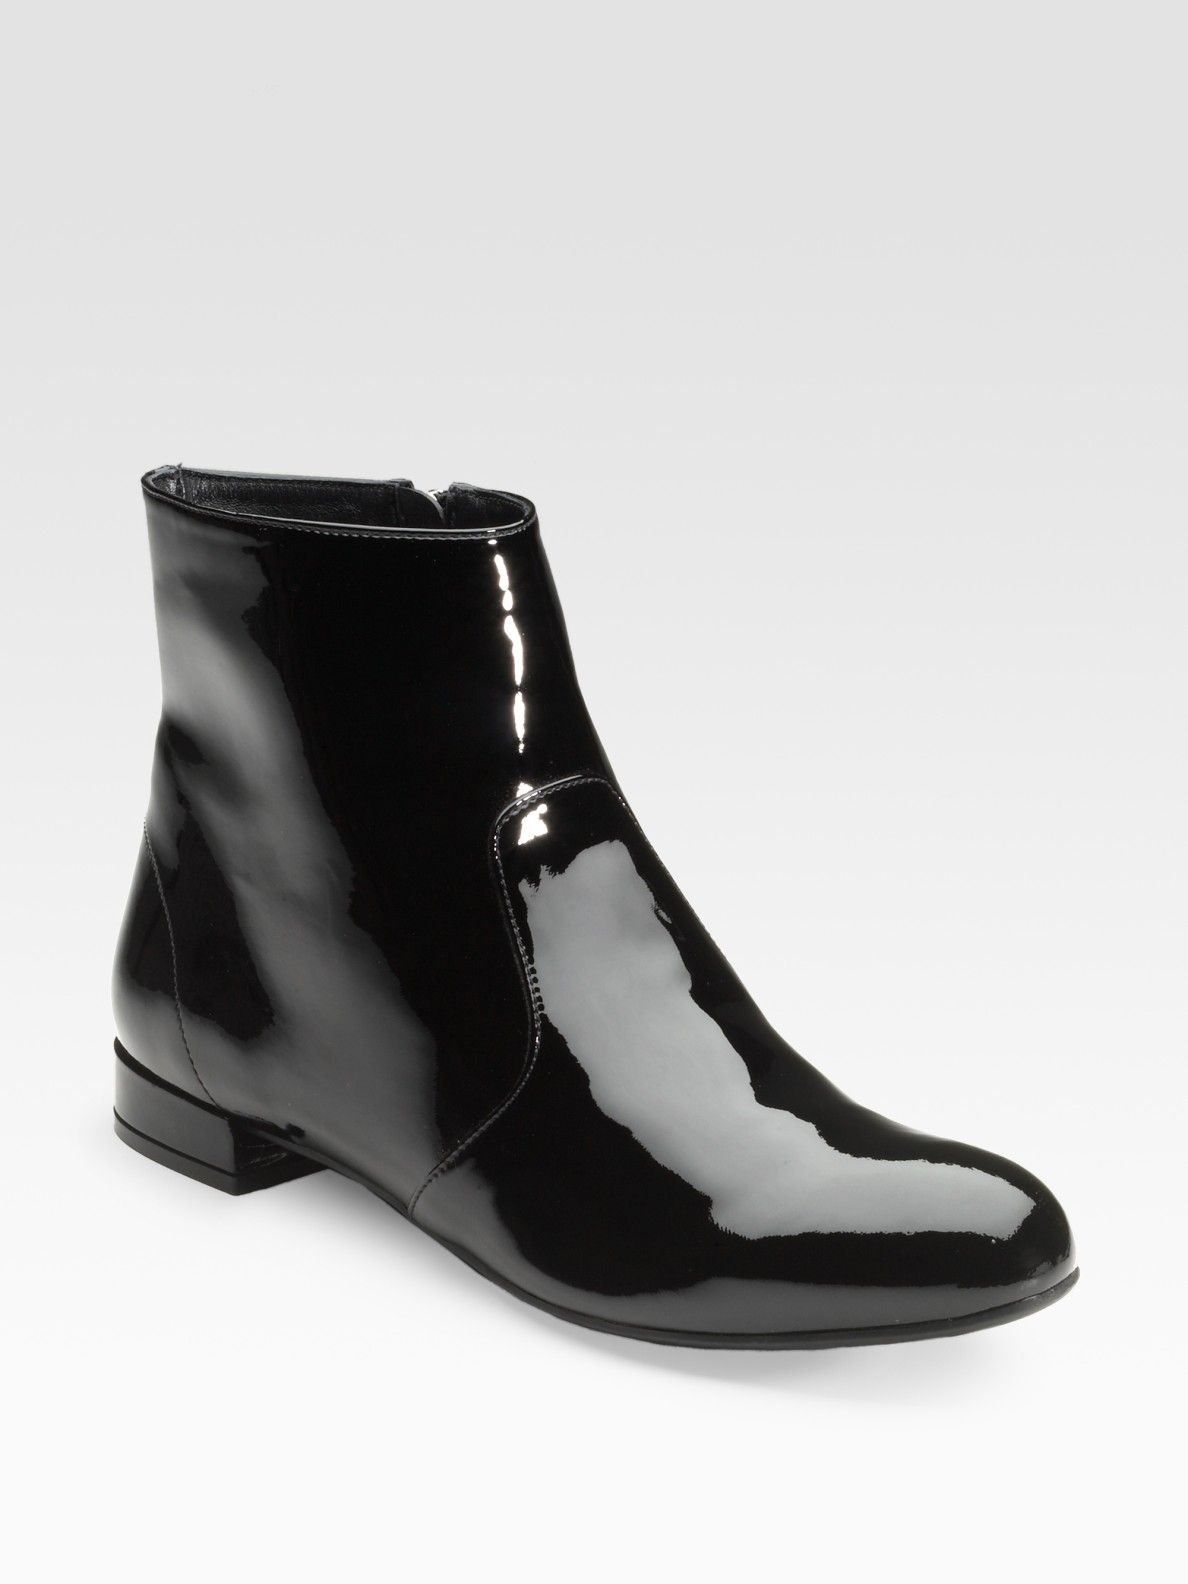 Prada Black Patent Leather Ankle Boots in Black | Lyst